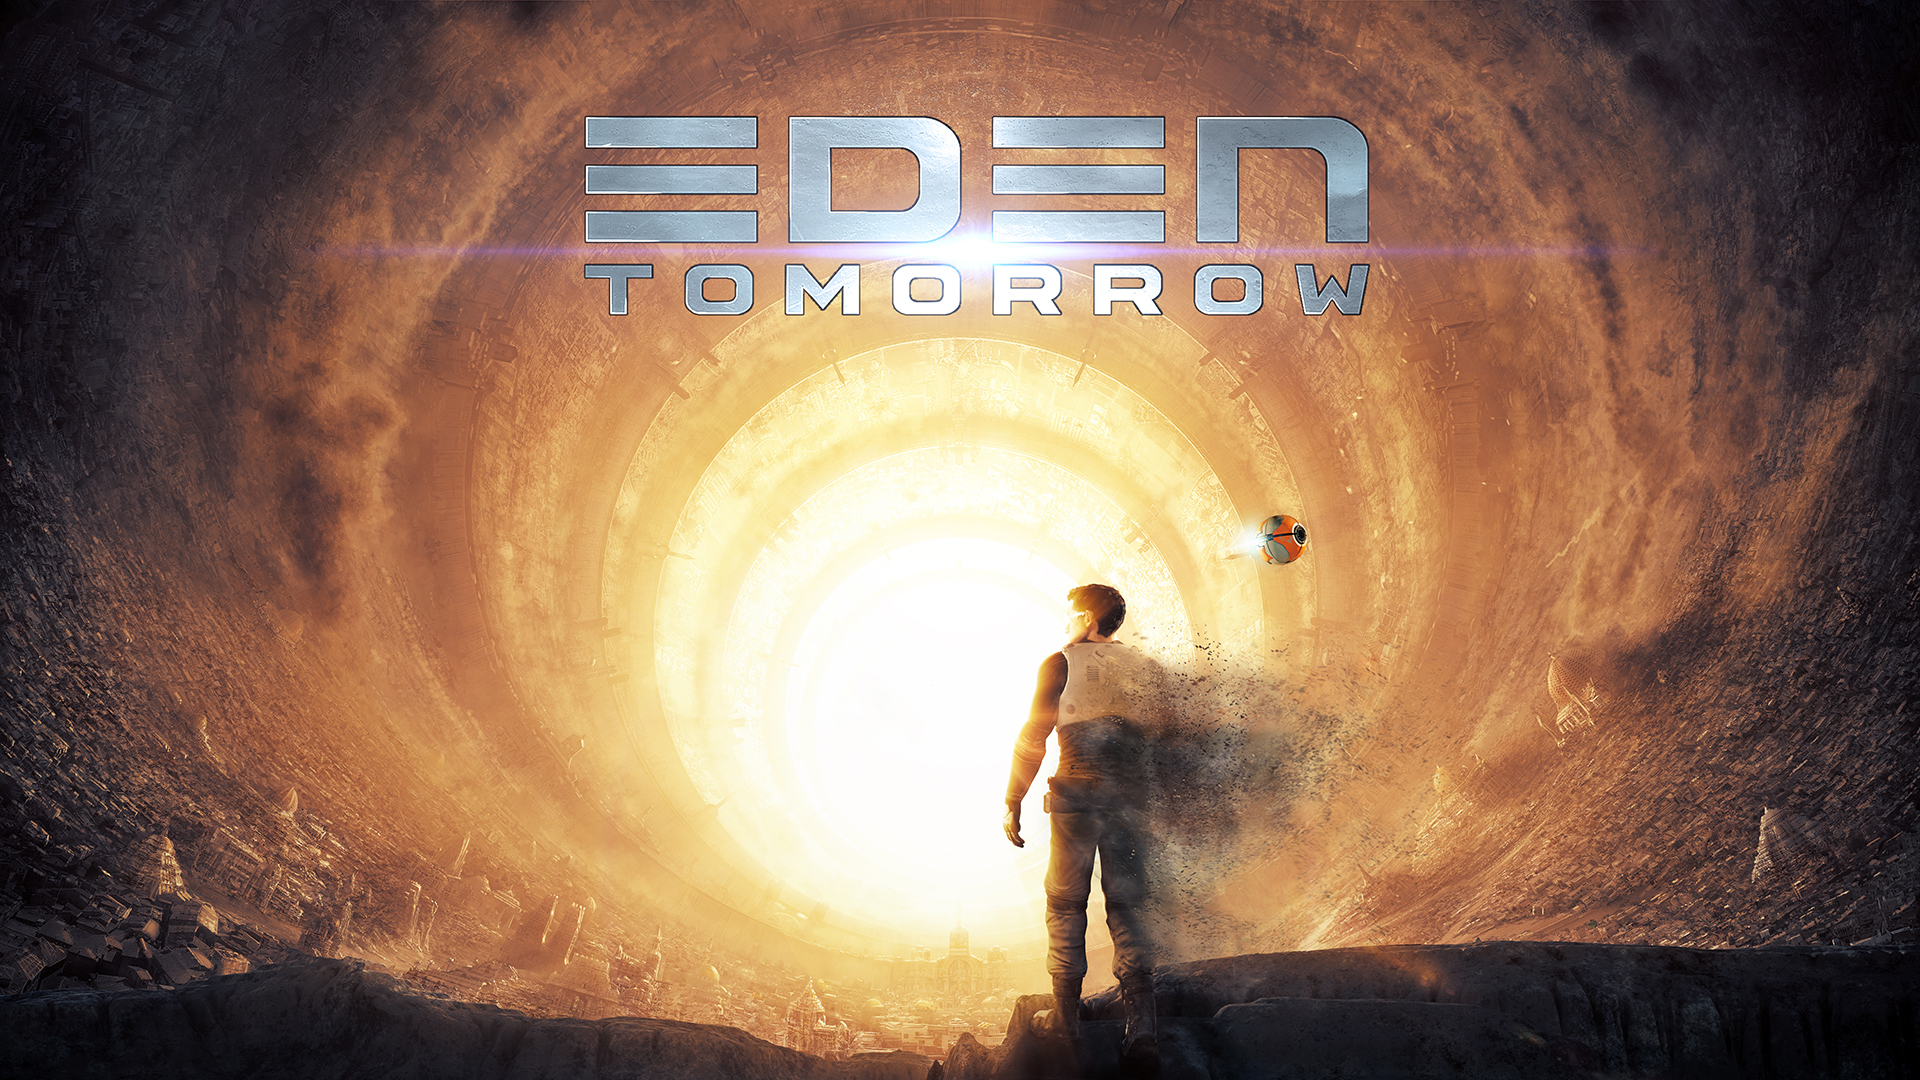 Eden-Tomorrow PGW Featured Image